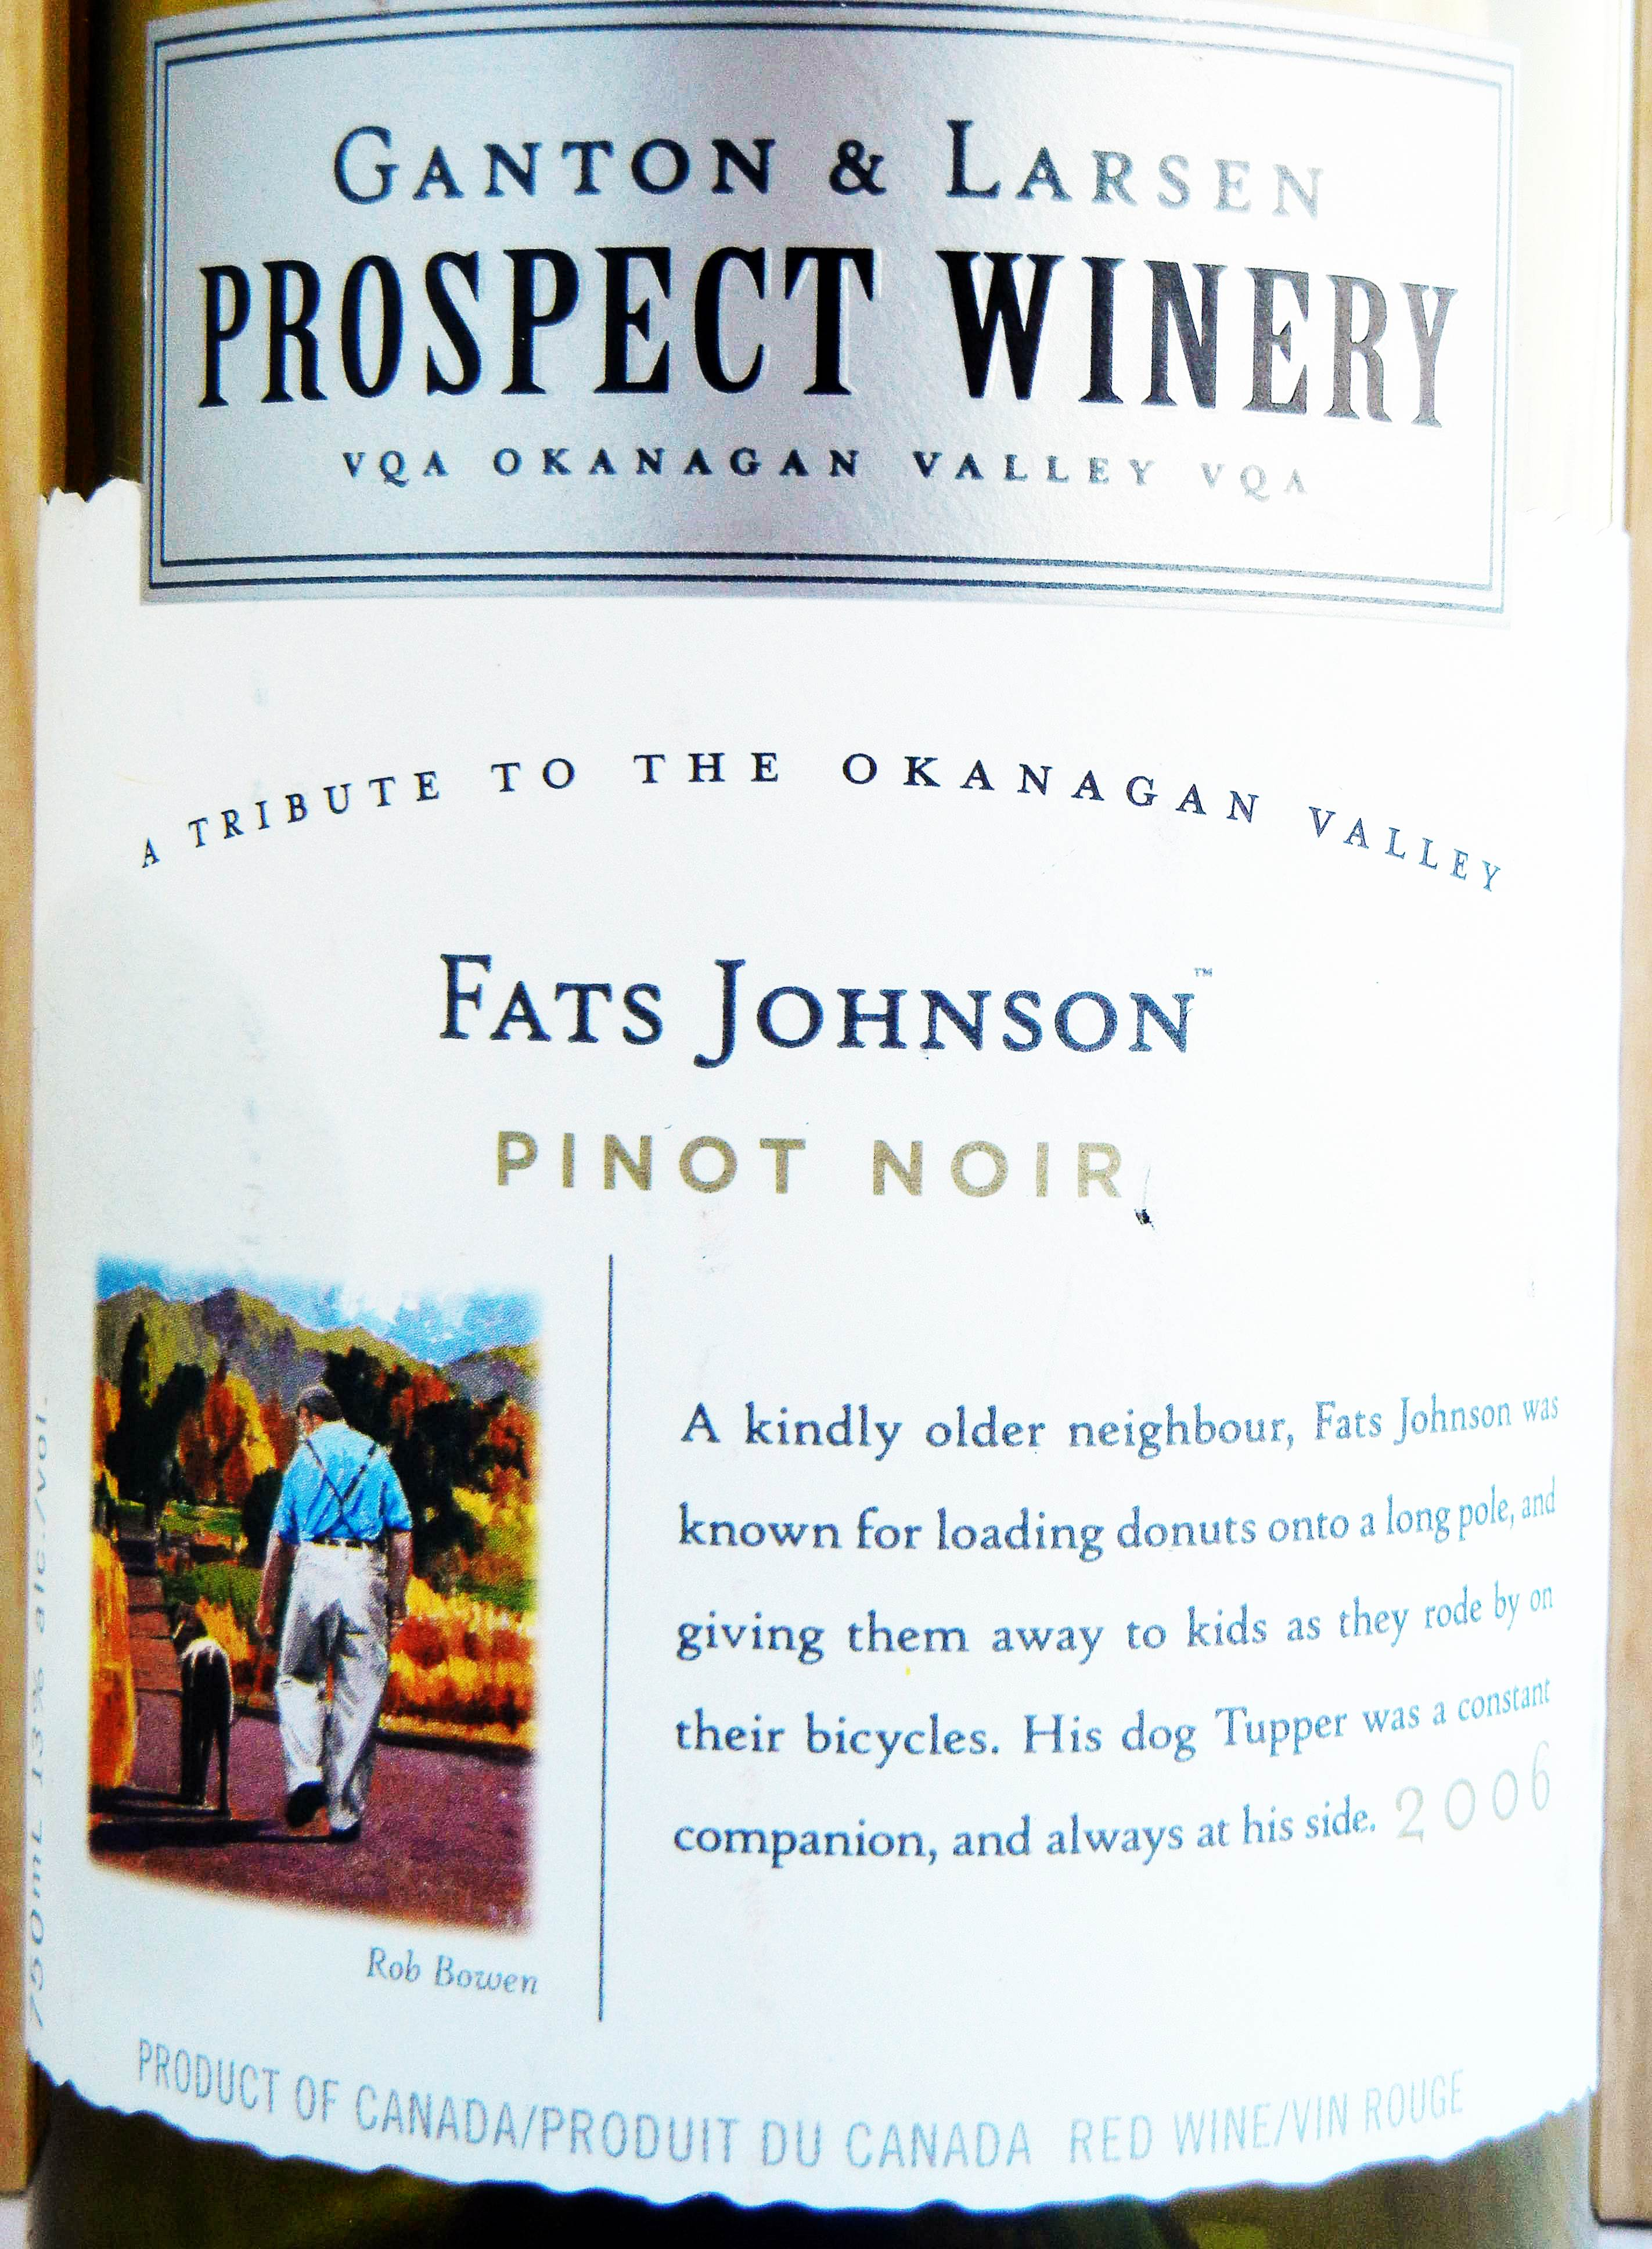 Prospect Winery Fats Johnson Pinot Noir 2006 Label - BC Pinot Noir Tasting Review 12